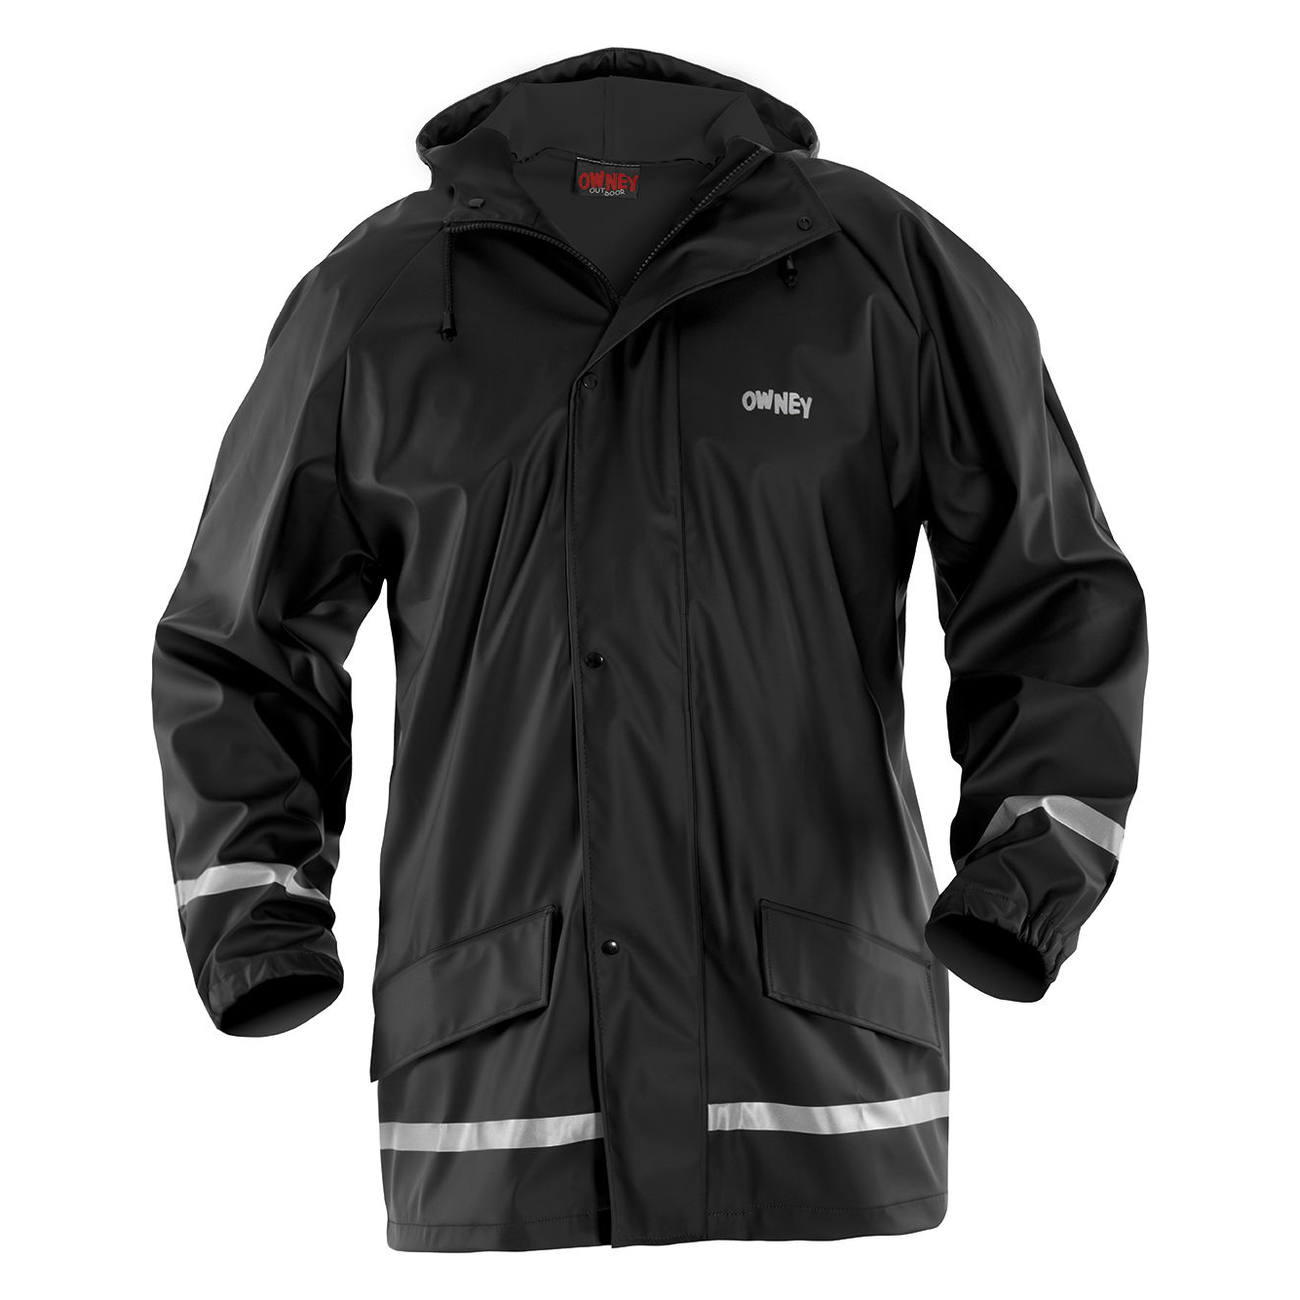 Owney Outdoor Regenjacke IMAQ unisex, L